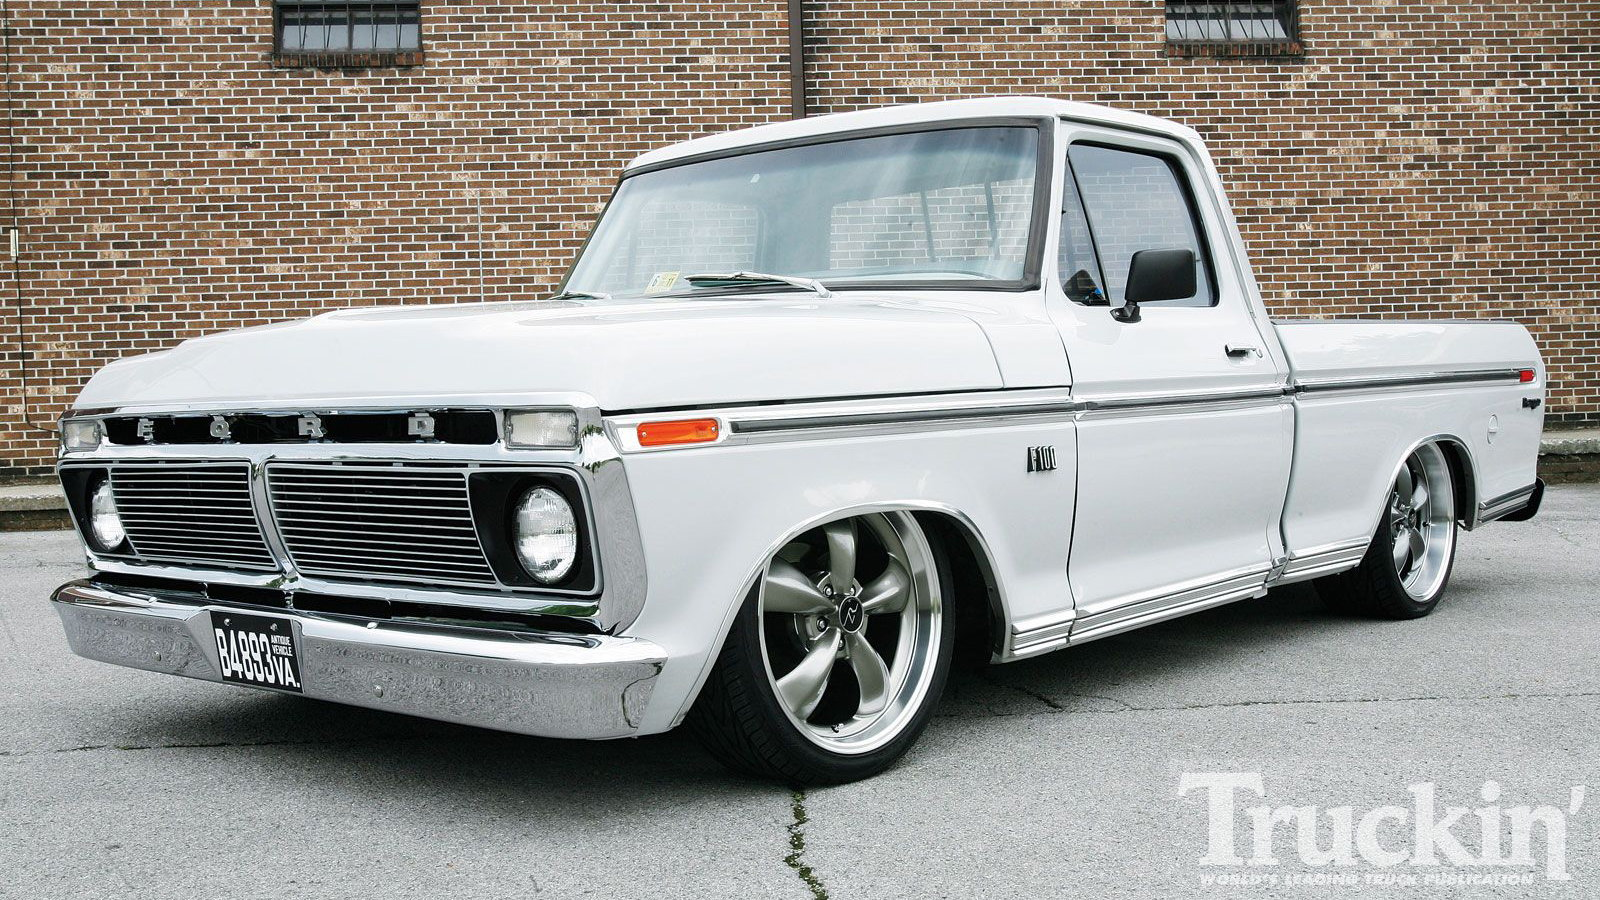 74 F-100: Bought then Built